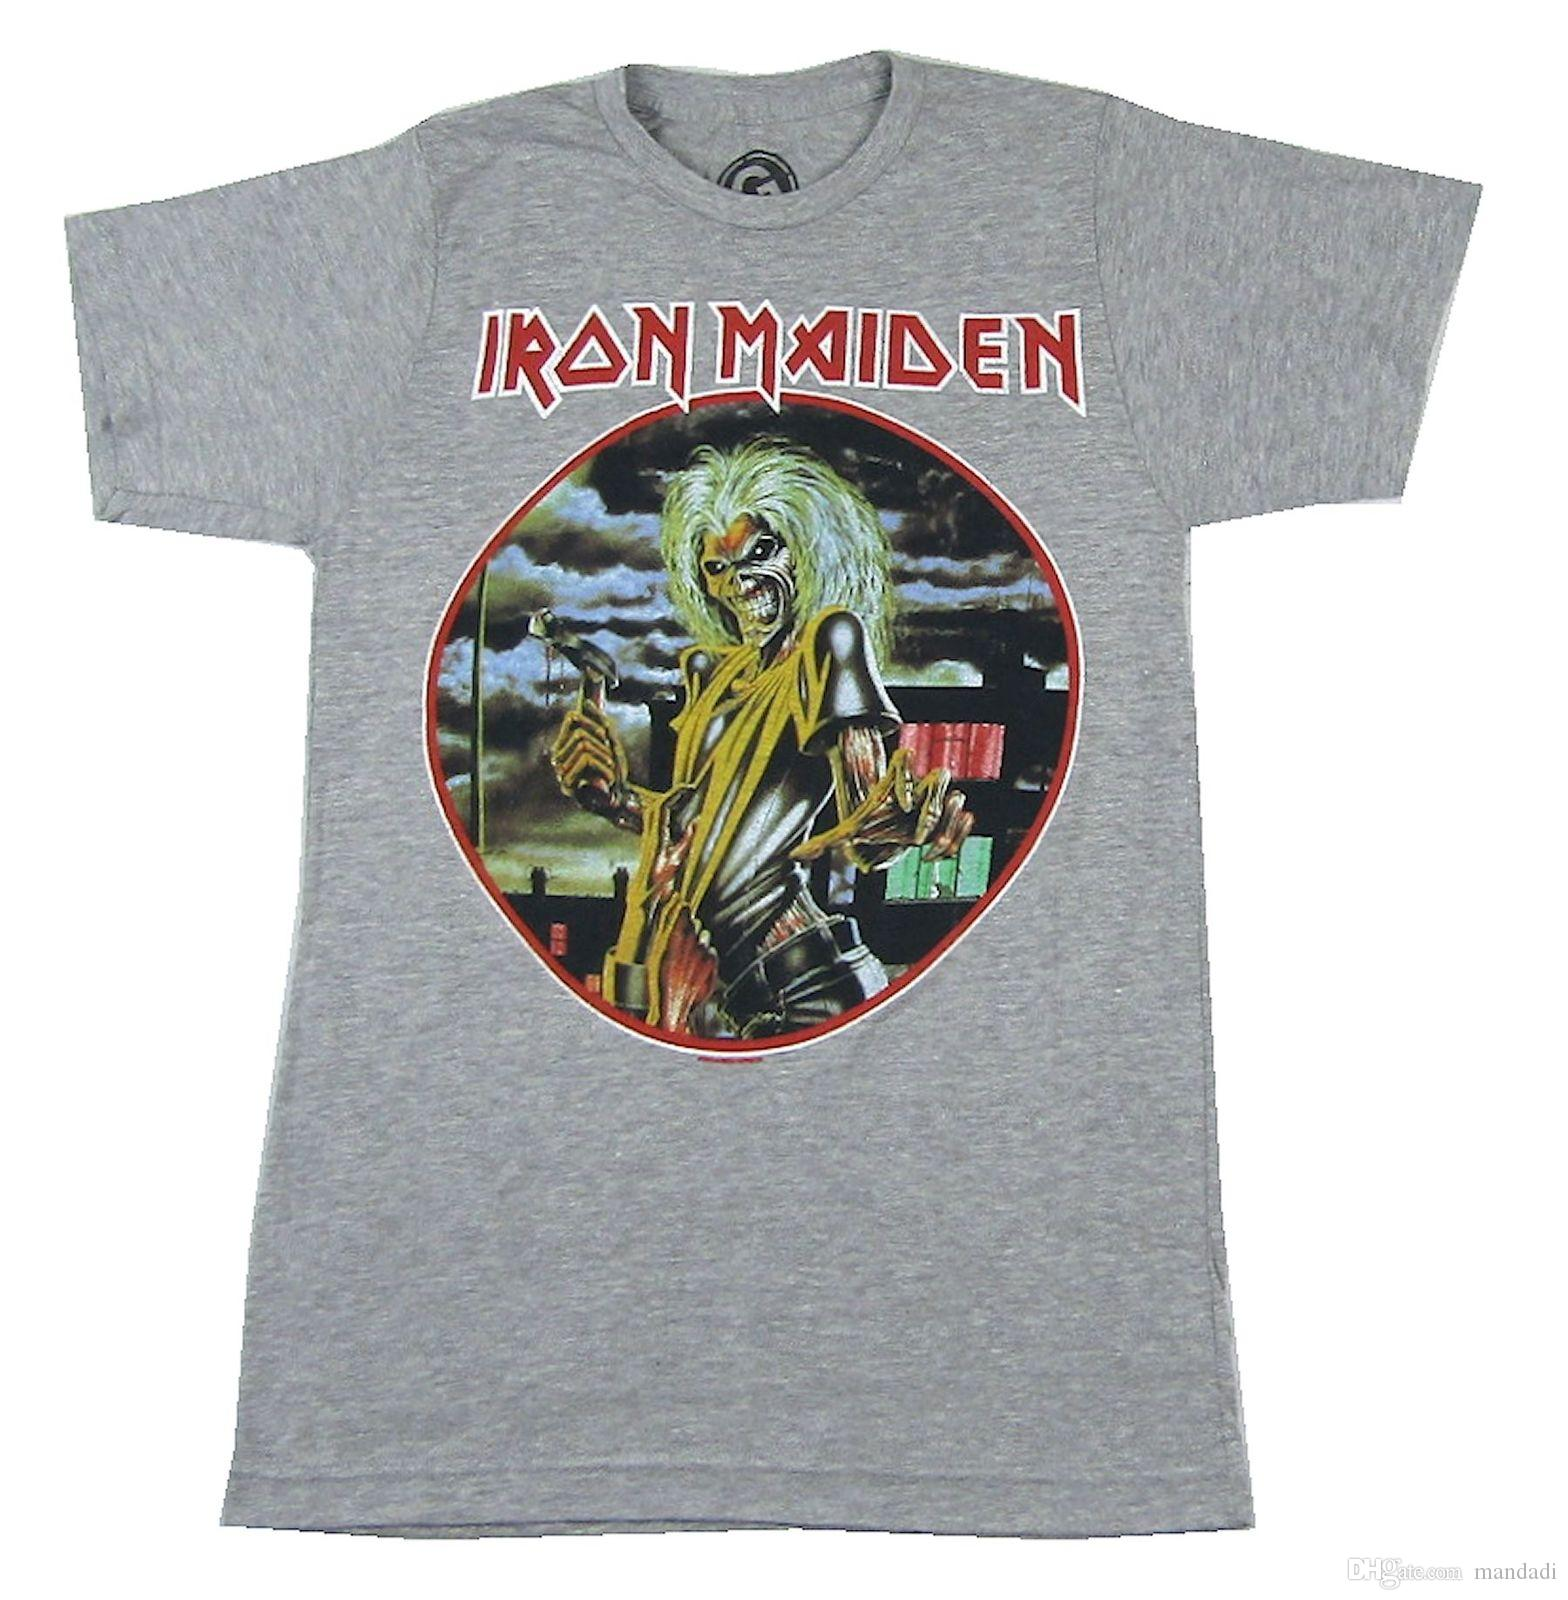 41679f6e3dc Iron Maiden Killers Ed Heather Grey T Shirt New Official Band Merch Album  Art Shirts Funny Designer White T Shirt From Mandadi